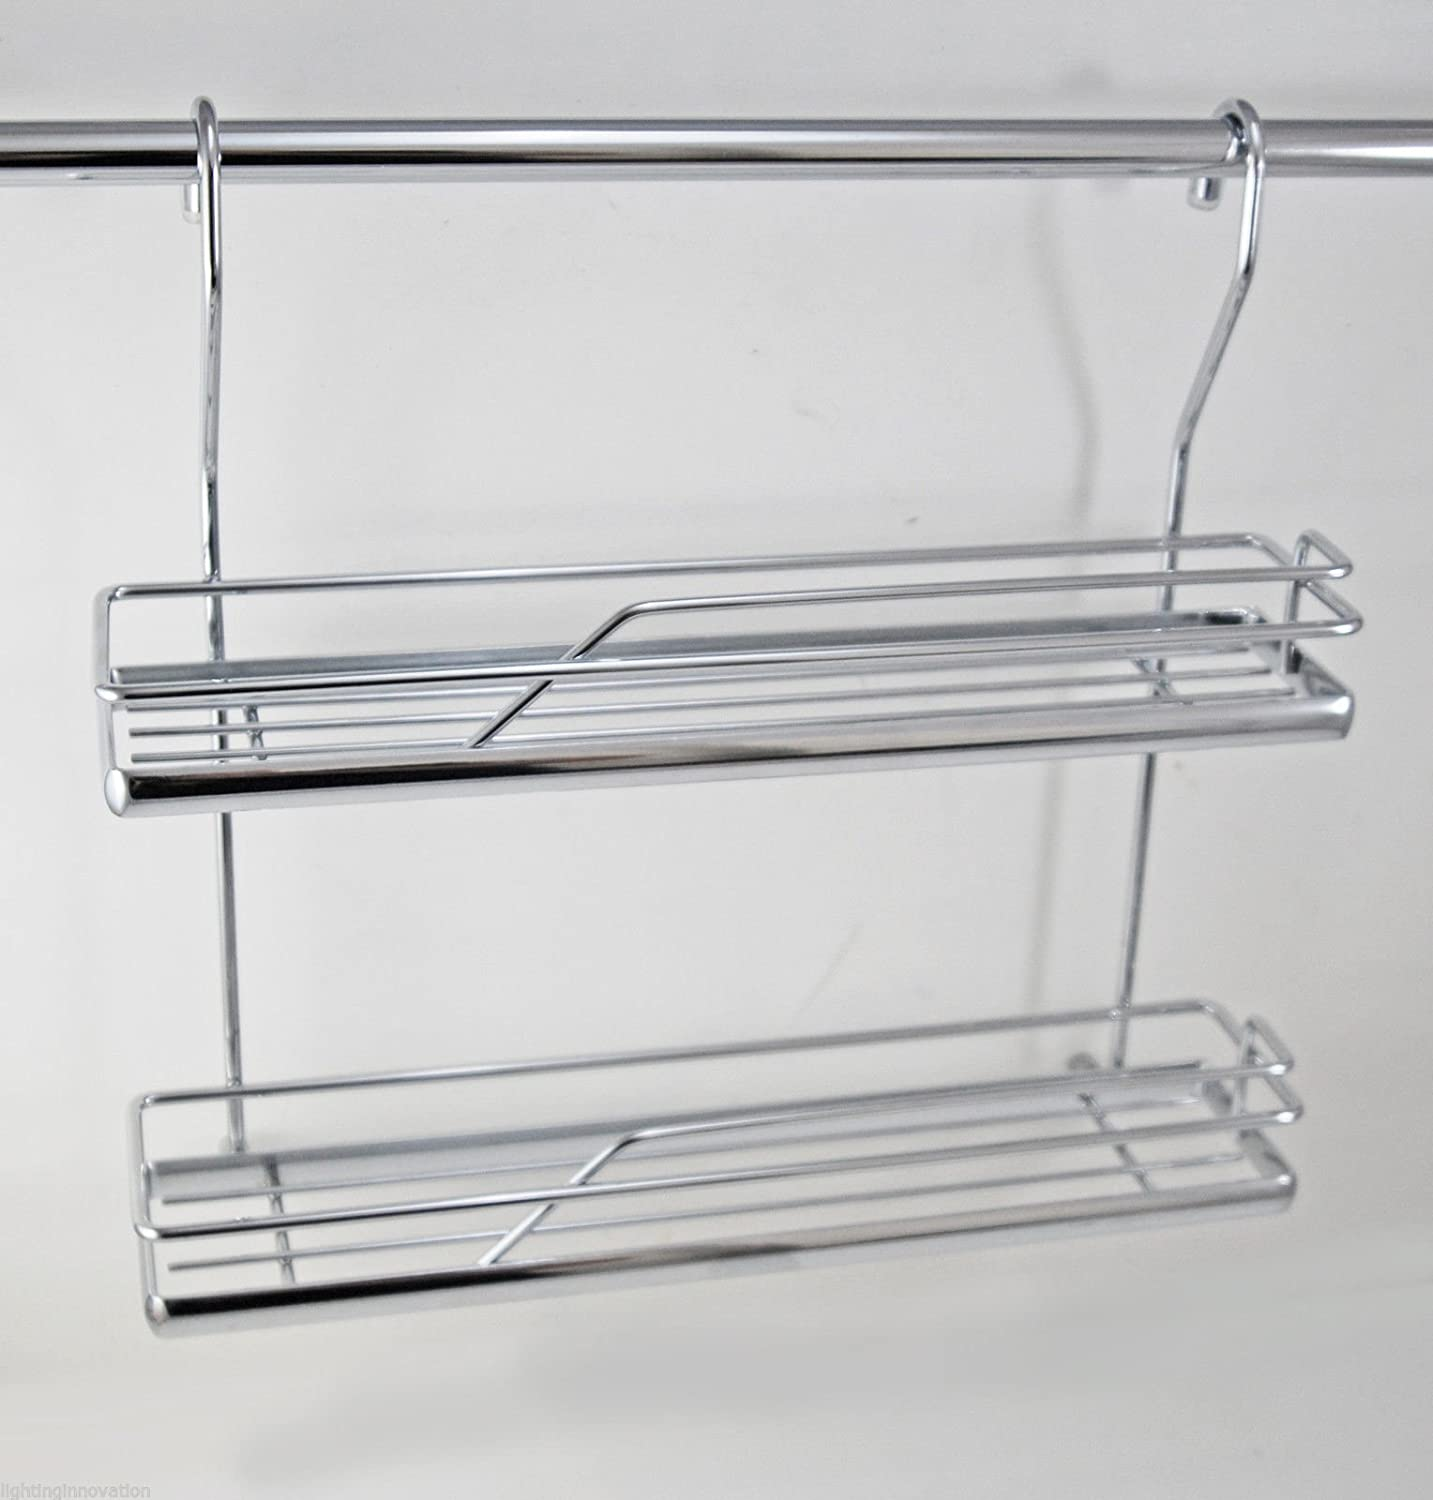 DOUBLE SPICE RACK KITCHEN RAIL WALL MOUNTED HANGING RAILING SYSTEM CHROME Lighting Innovations